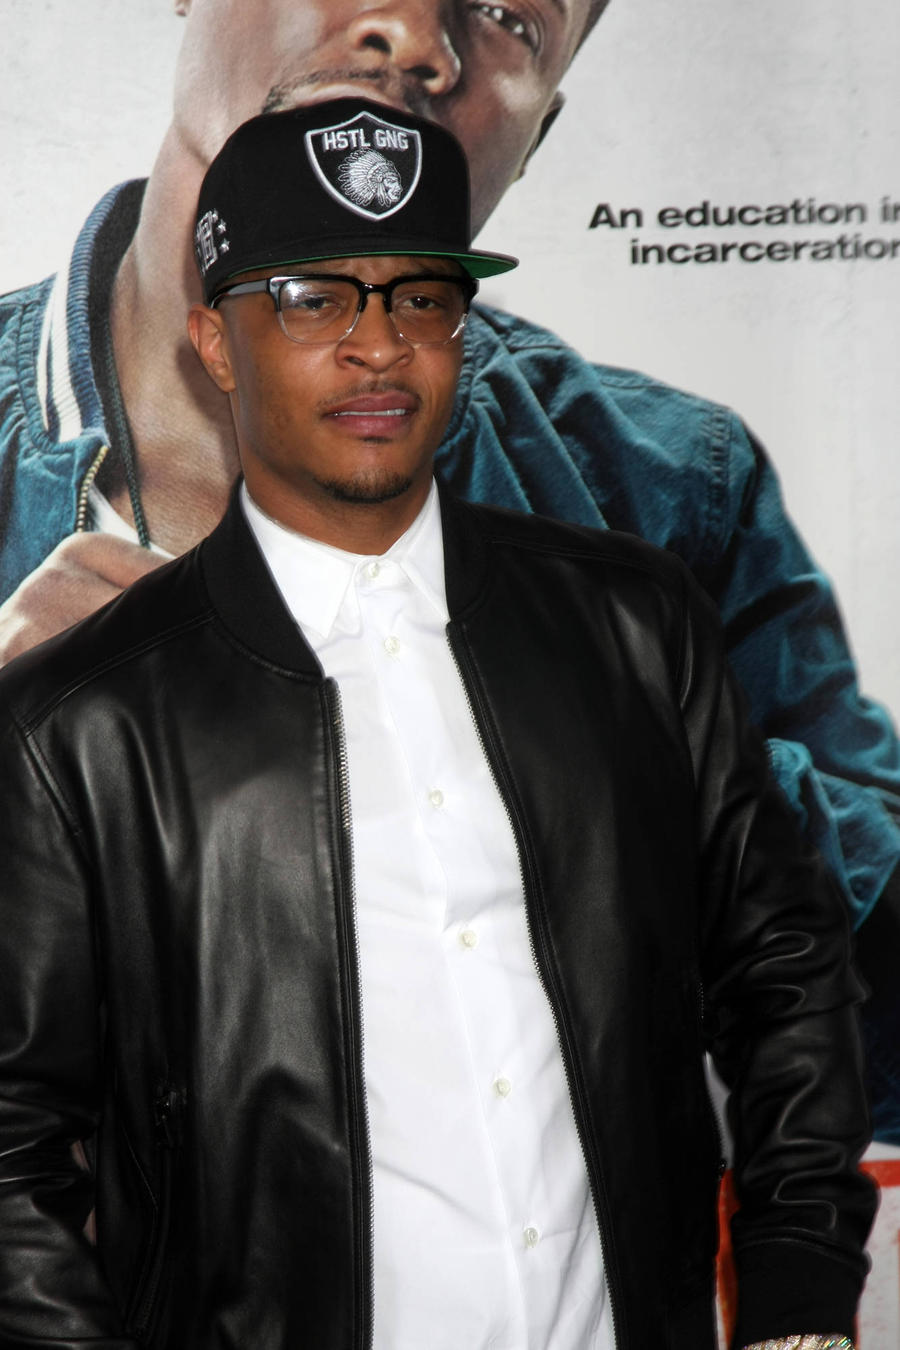 One Killed And Three Injured In T.i. Concert Shooting